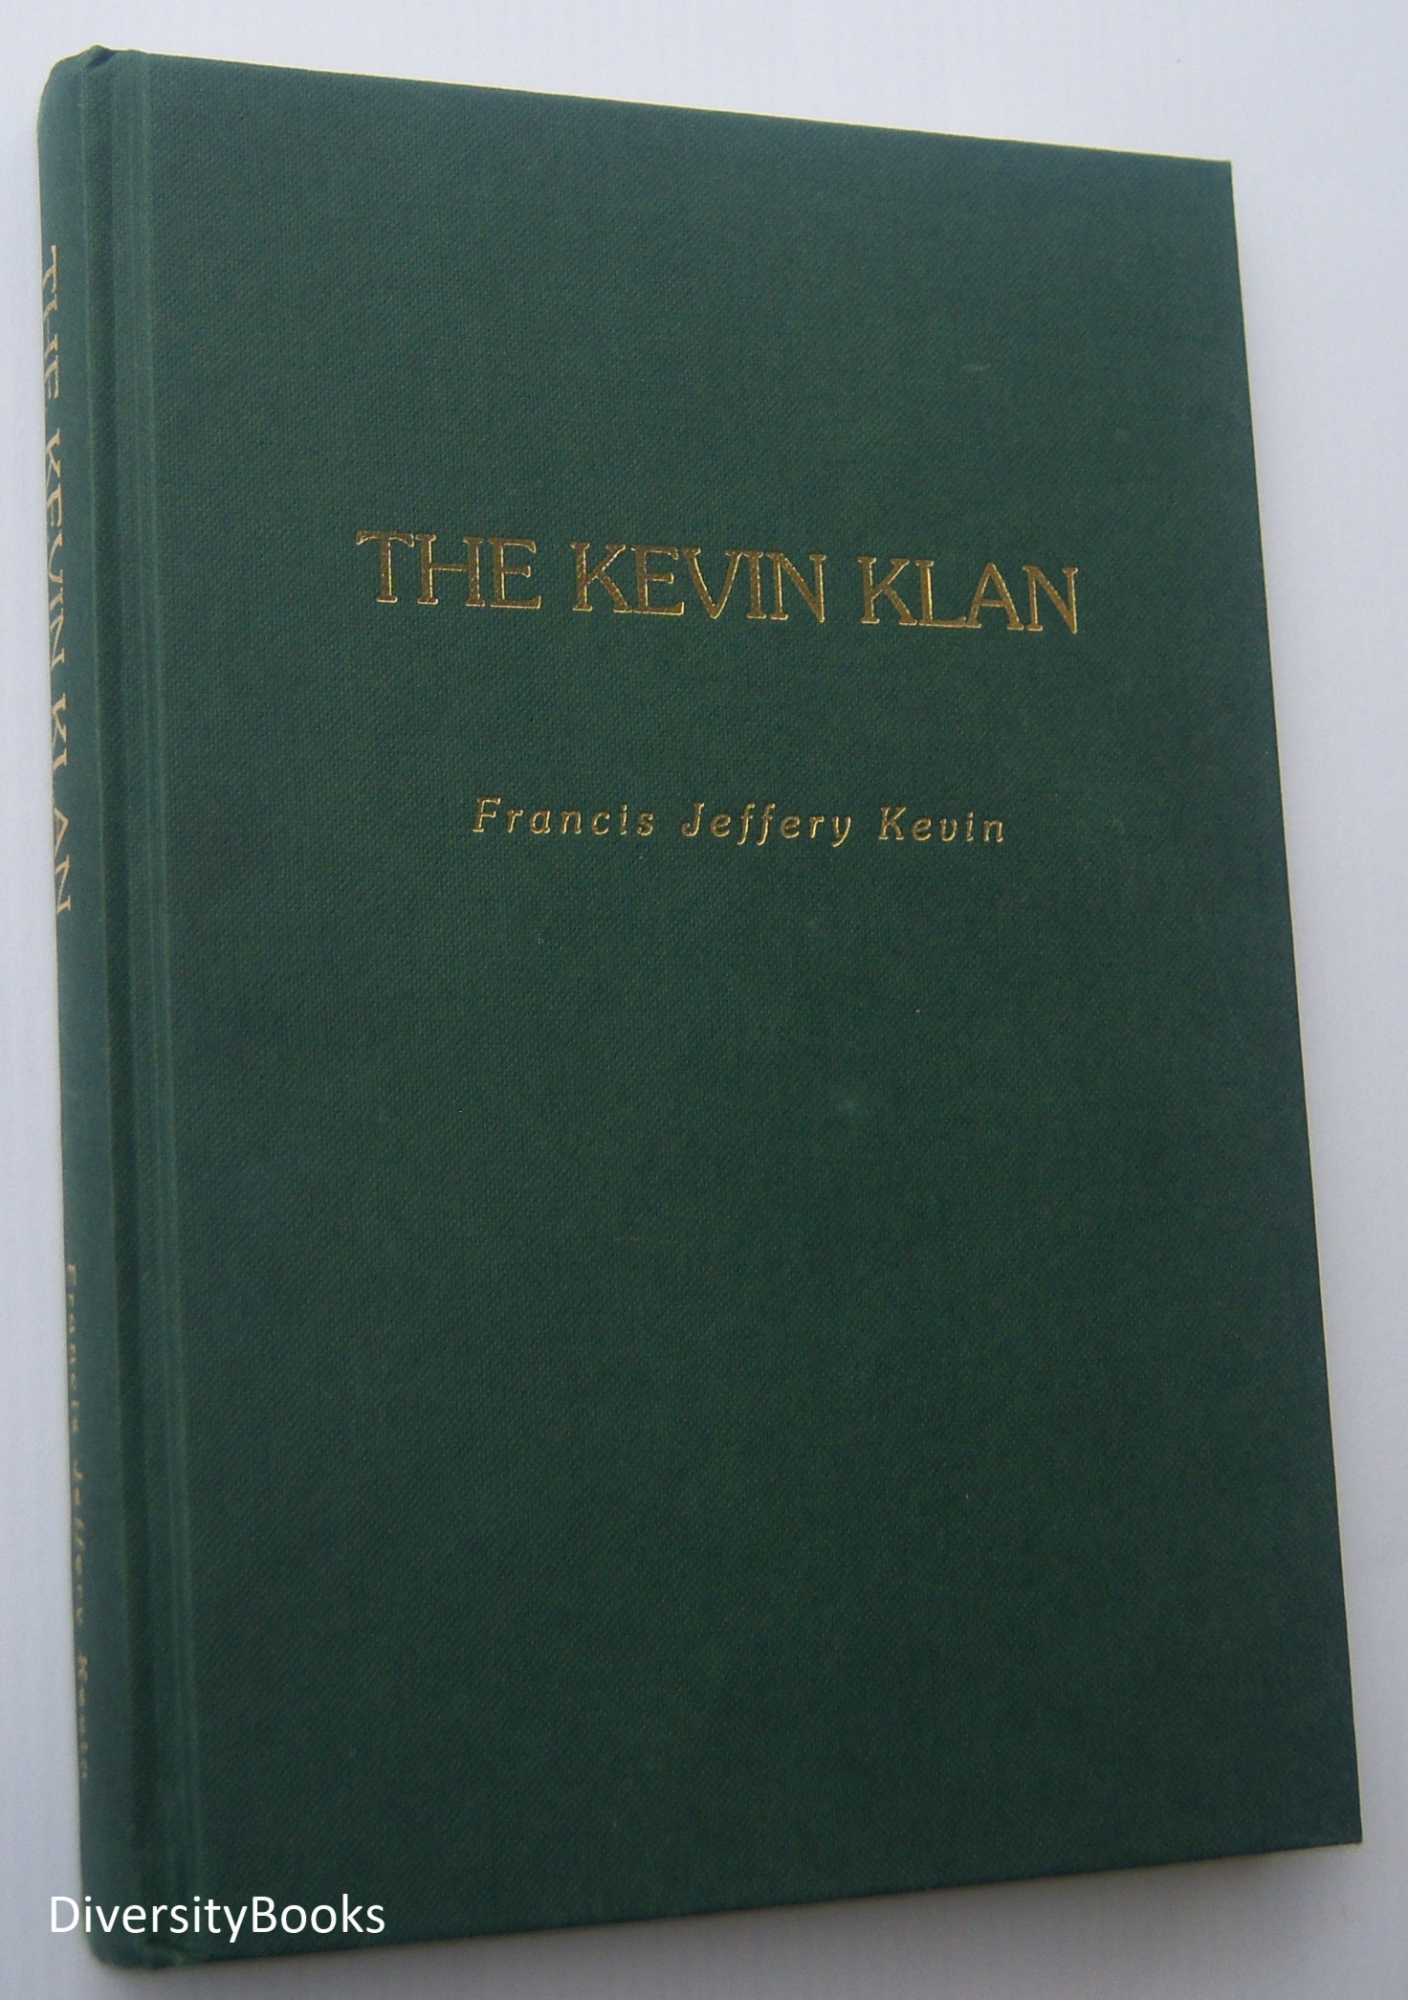 Image for THE KEVIN KLAN. (Signed Copy)